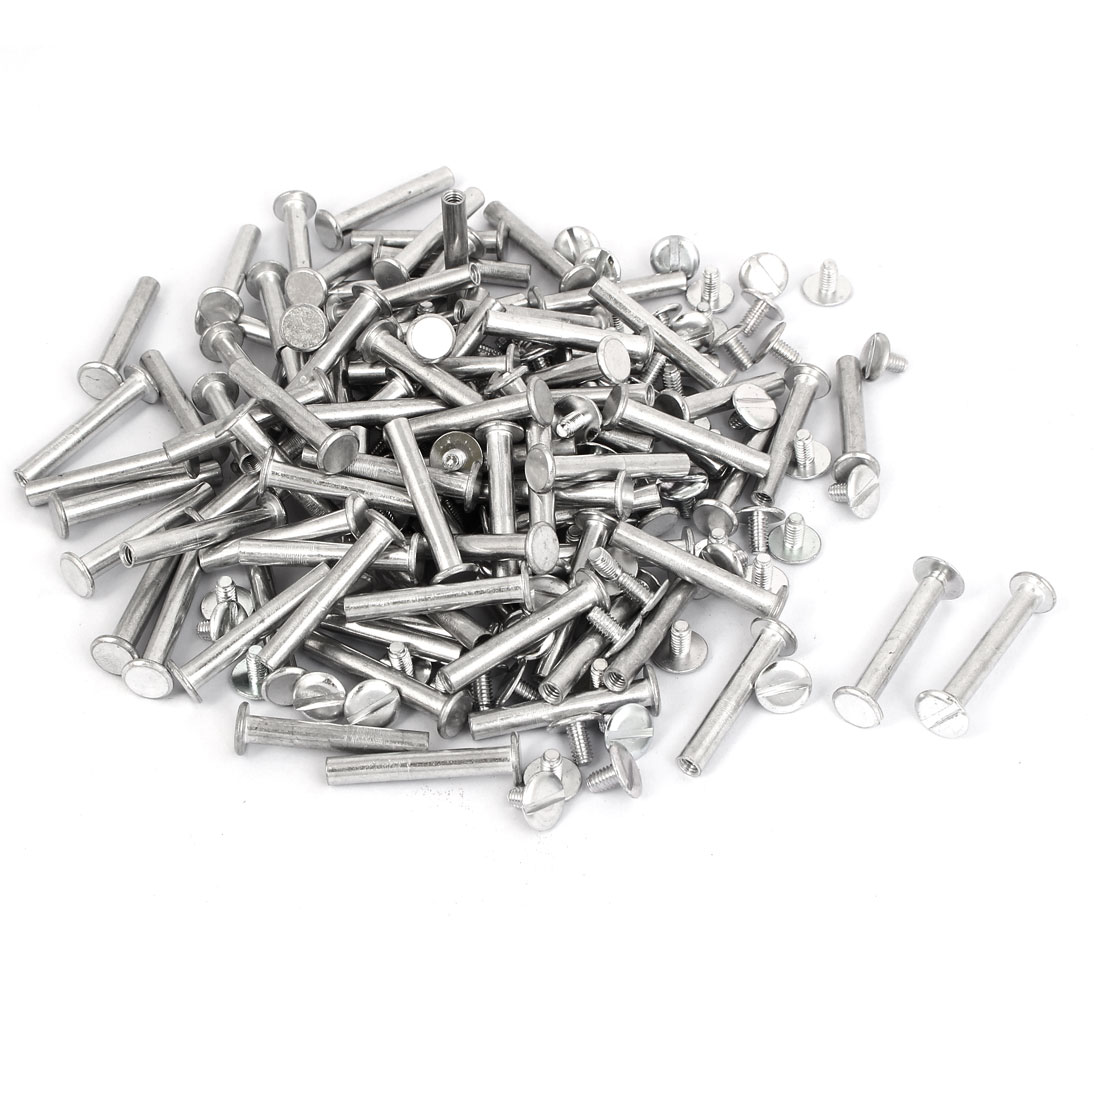 M5x32mm Aluminum Binding Screw Post 100pcs for Photo Albums Scrapbook